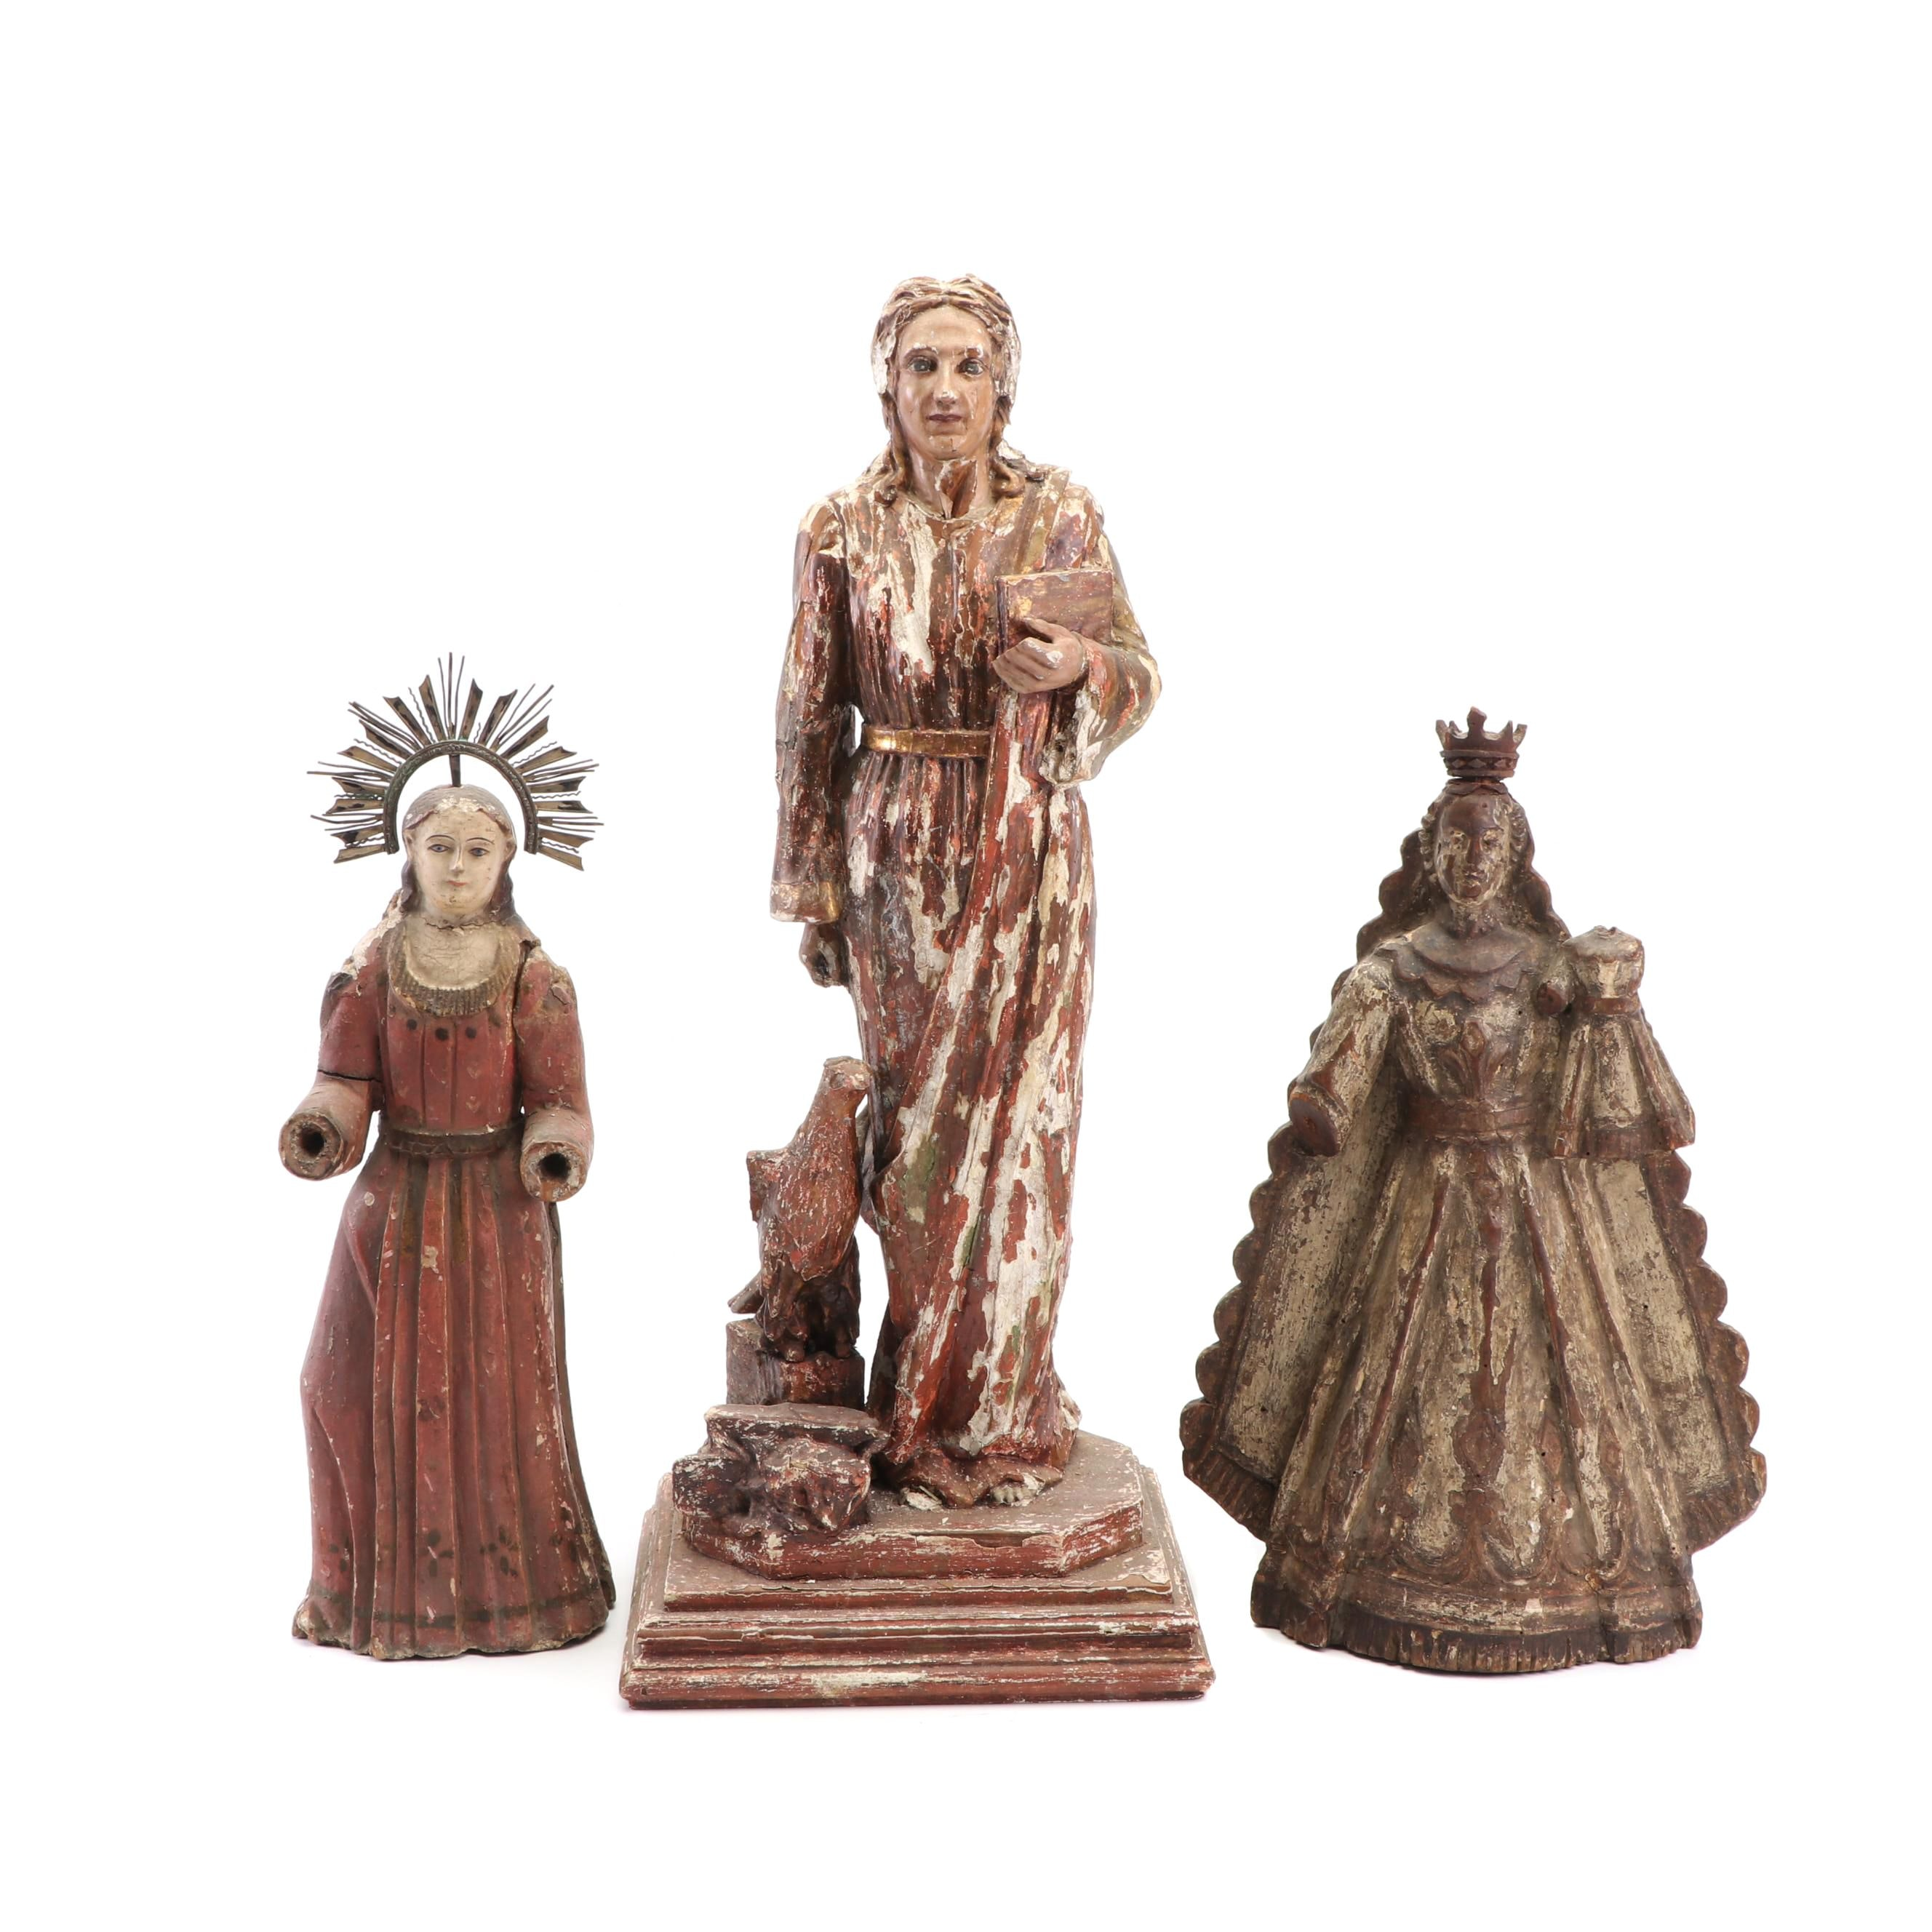 Spanish Colonial Style Wooden Santos Figures, Late 19th Century